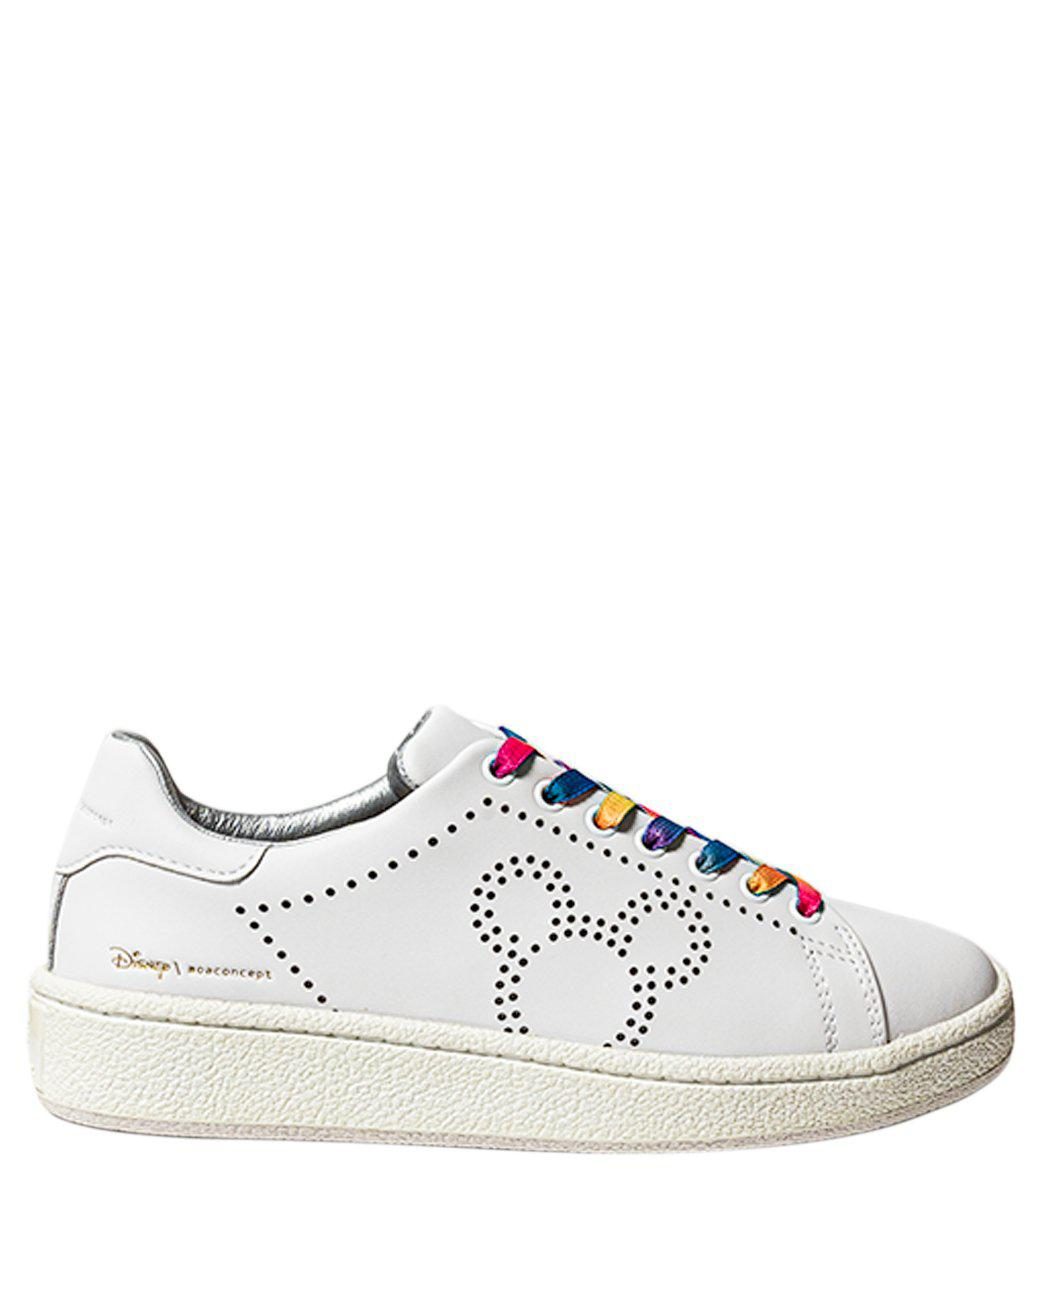 MICKEY MOUSE LEATHER SNEAKERS